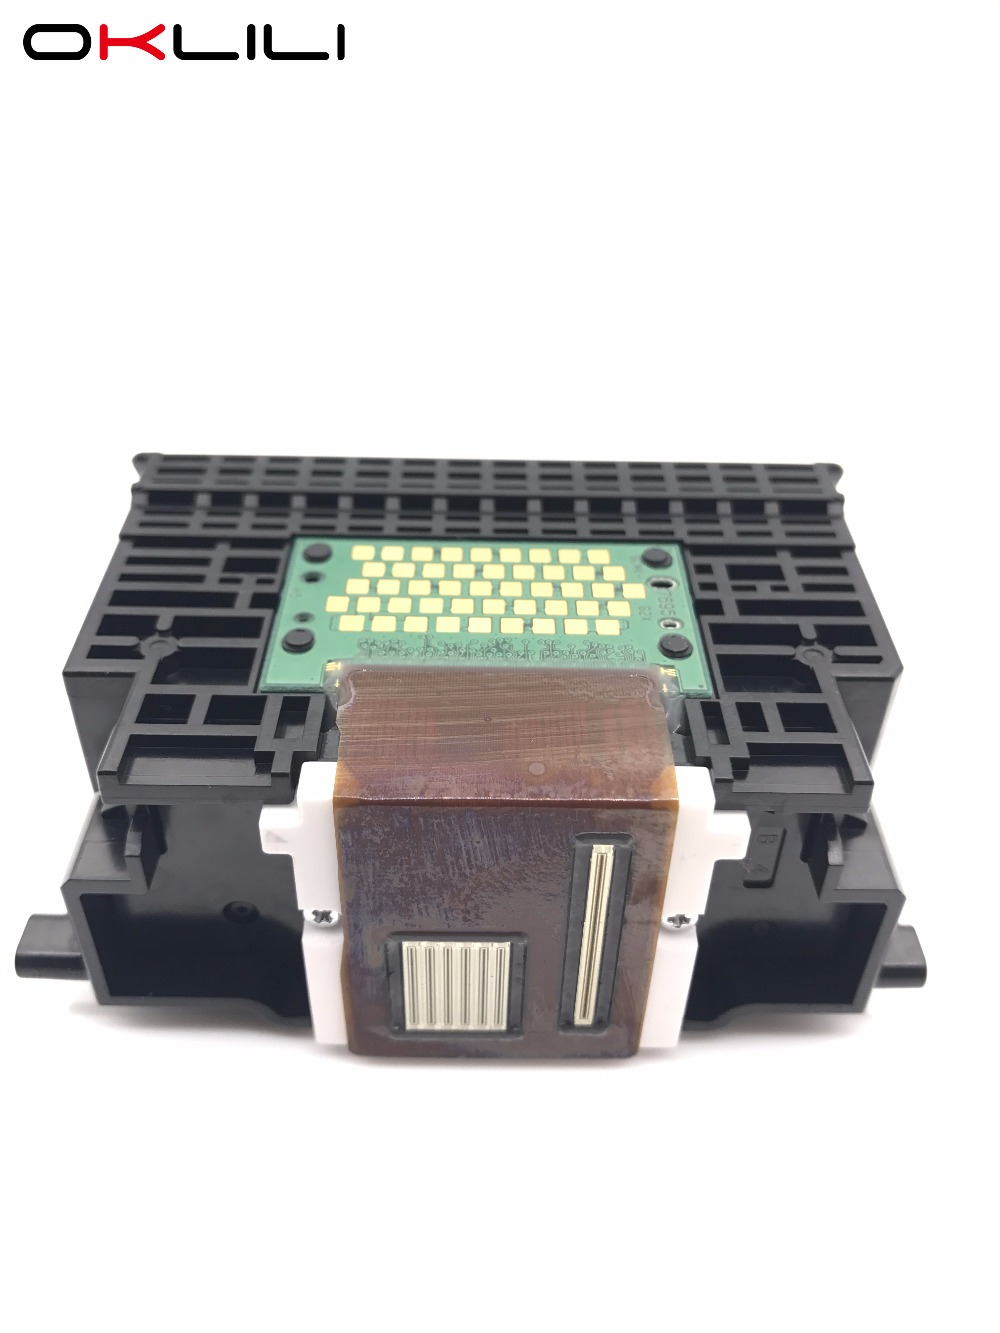 OKLILI ORIGINAL QY6-0075 QY6-0075-000 Printhead Print Head Printer Head for Canon iP5300 MP810 iP4500 MP610 MX850 new original print head qy6 0061 00 printhead for canon ip4300 ip5200 ip5200r mp600 mp600r mp800 mp800r mp830 plotter